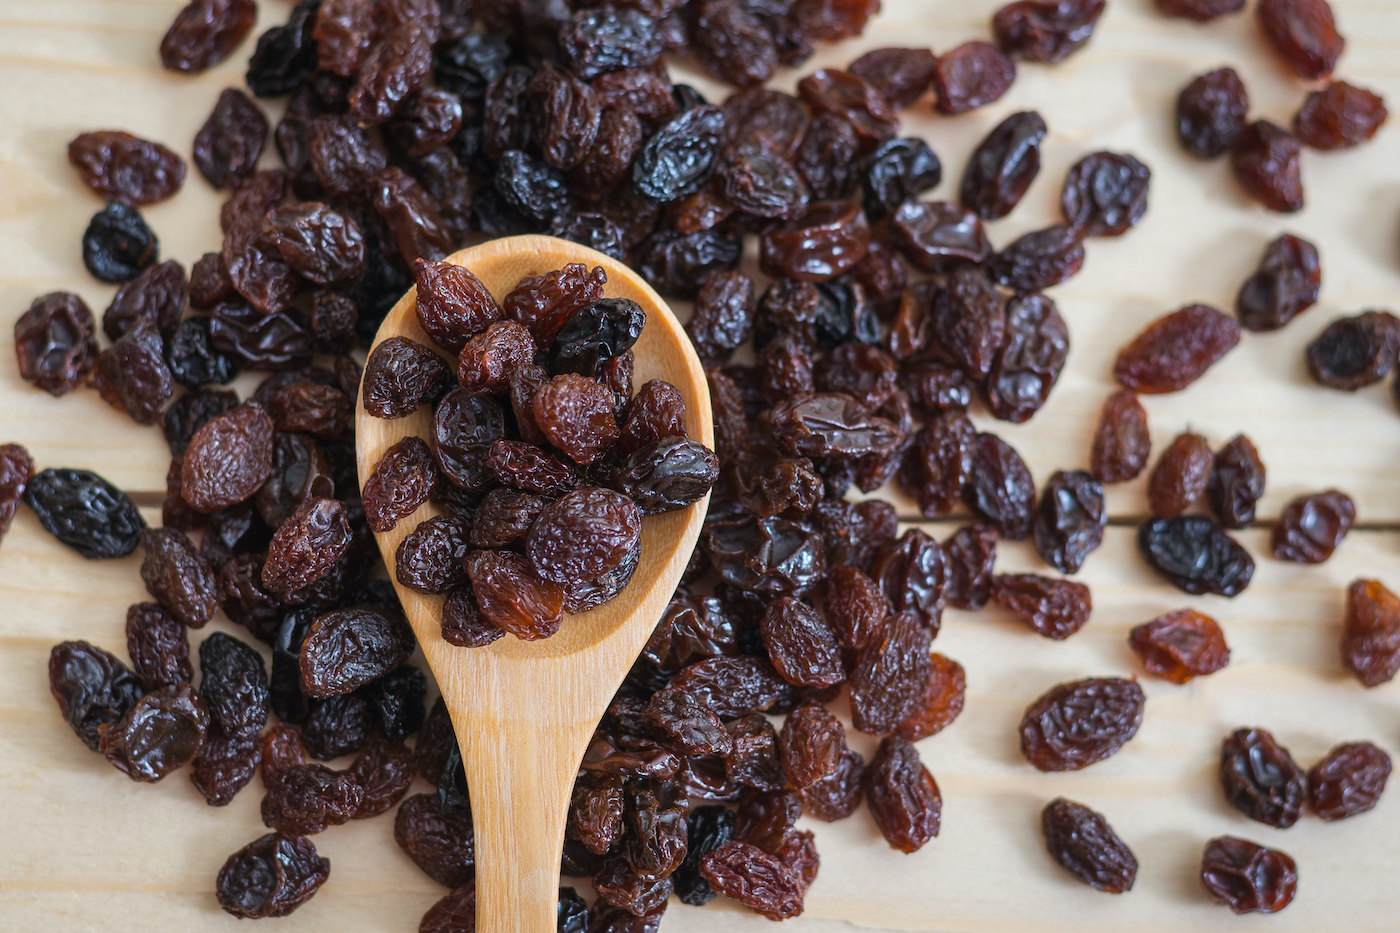 Thumbnail for 5 Benefits of Raisins That Make Them a Surprisingly Good Pre-Workout Snack